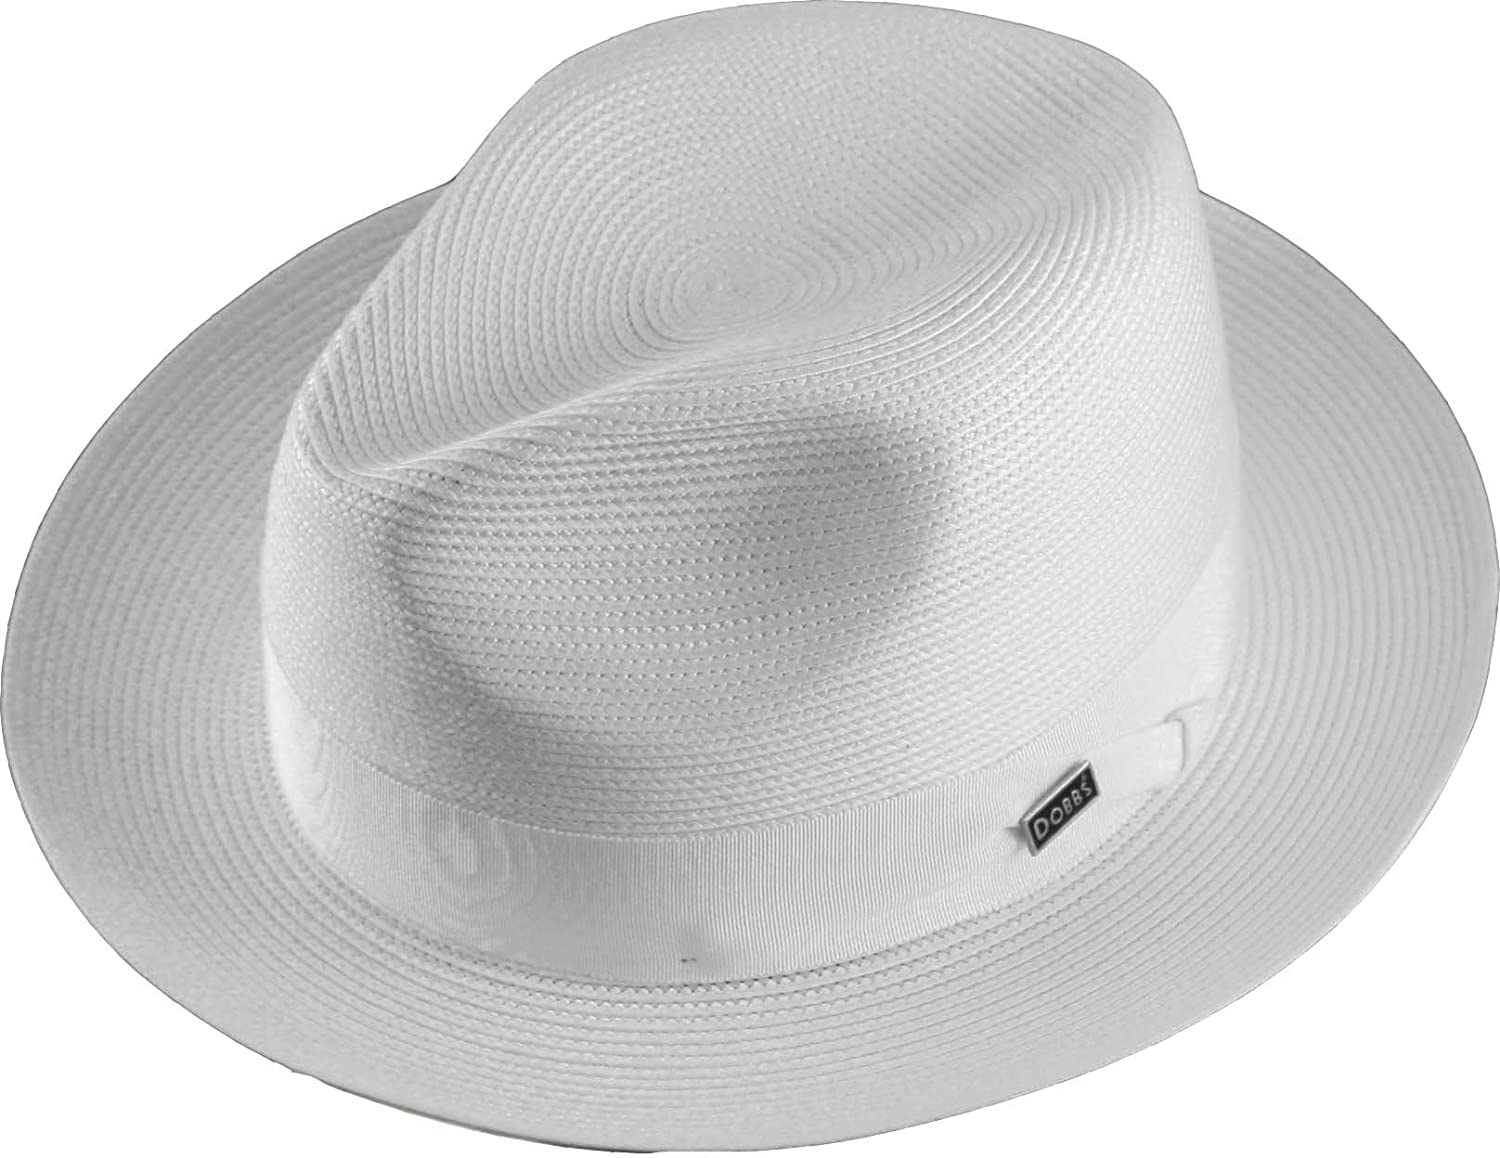 9ee8f5af28f2f7 Dobbs Rosebud Straw Hat at Amazon Men's Clothing store: